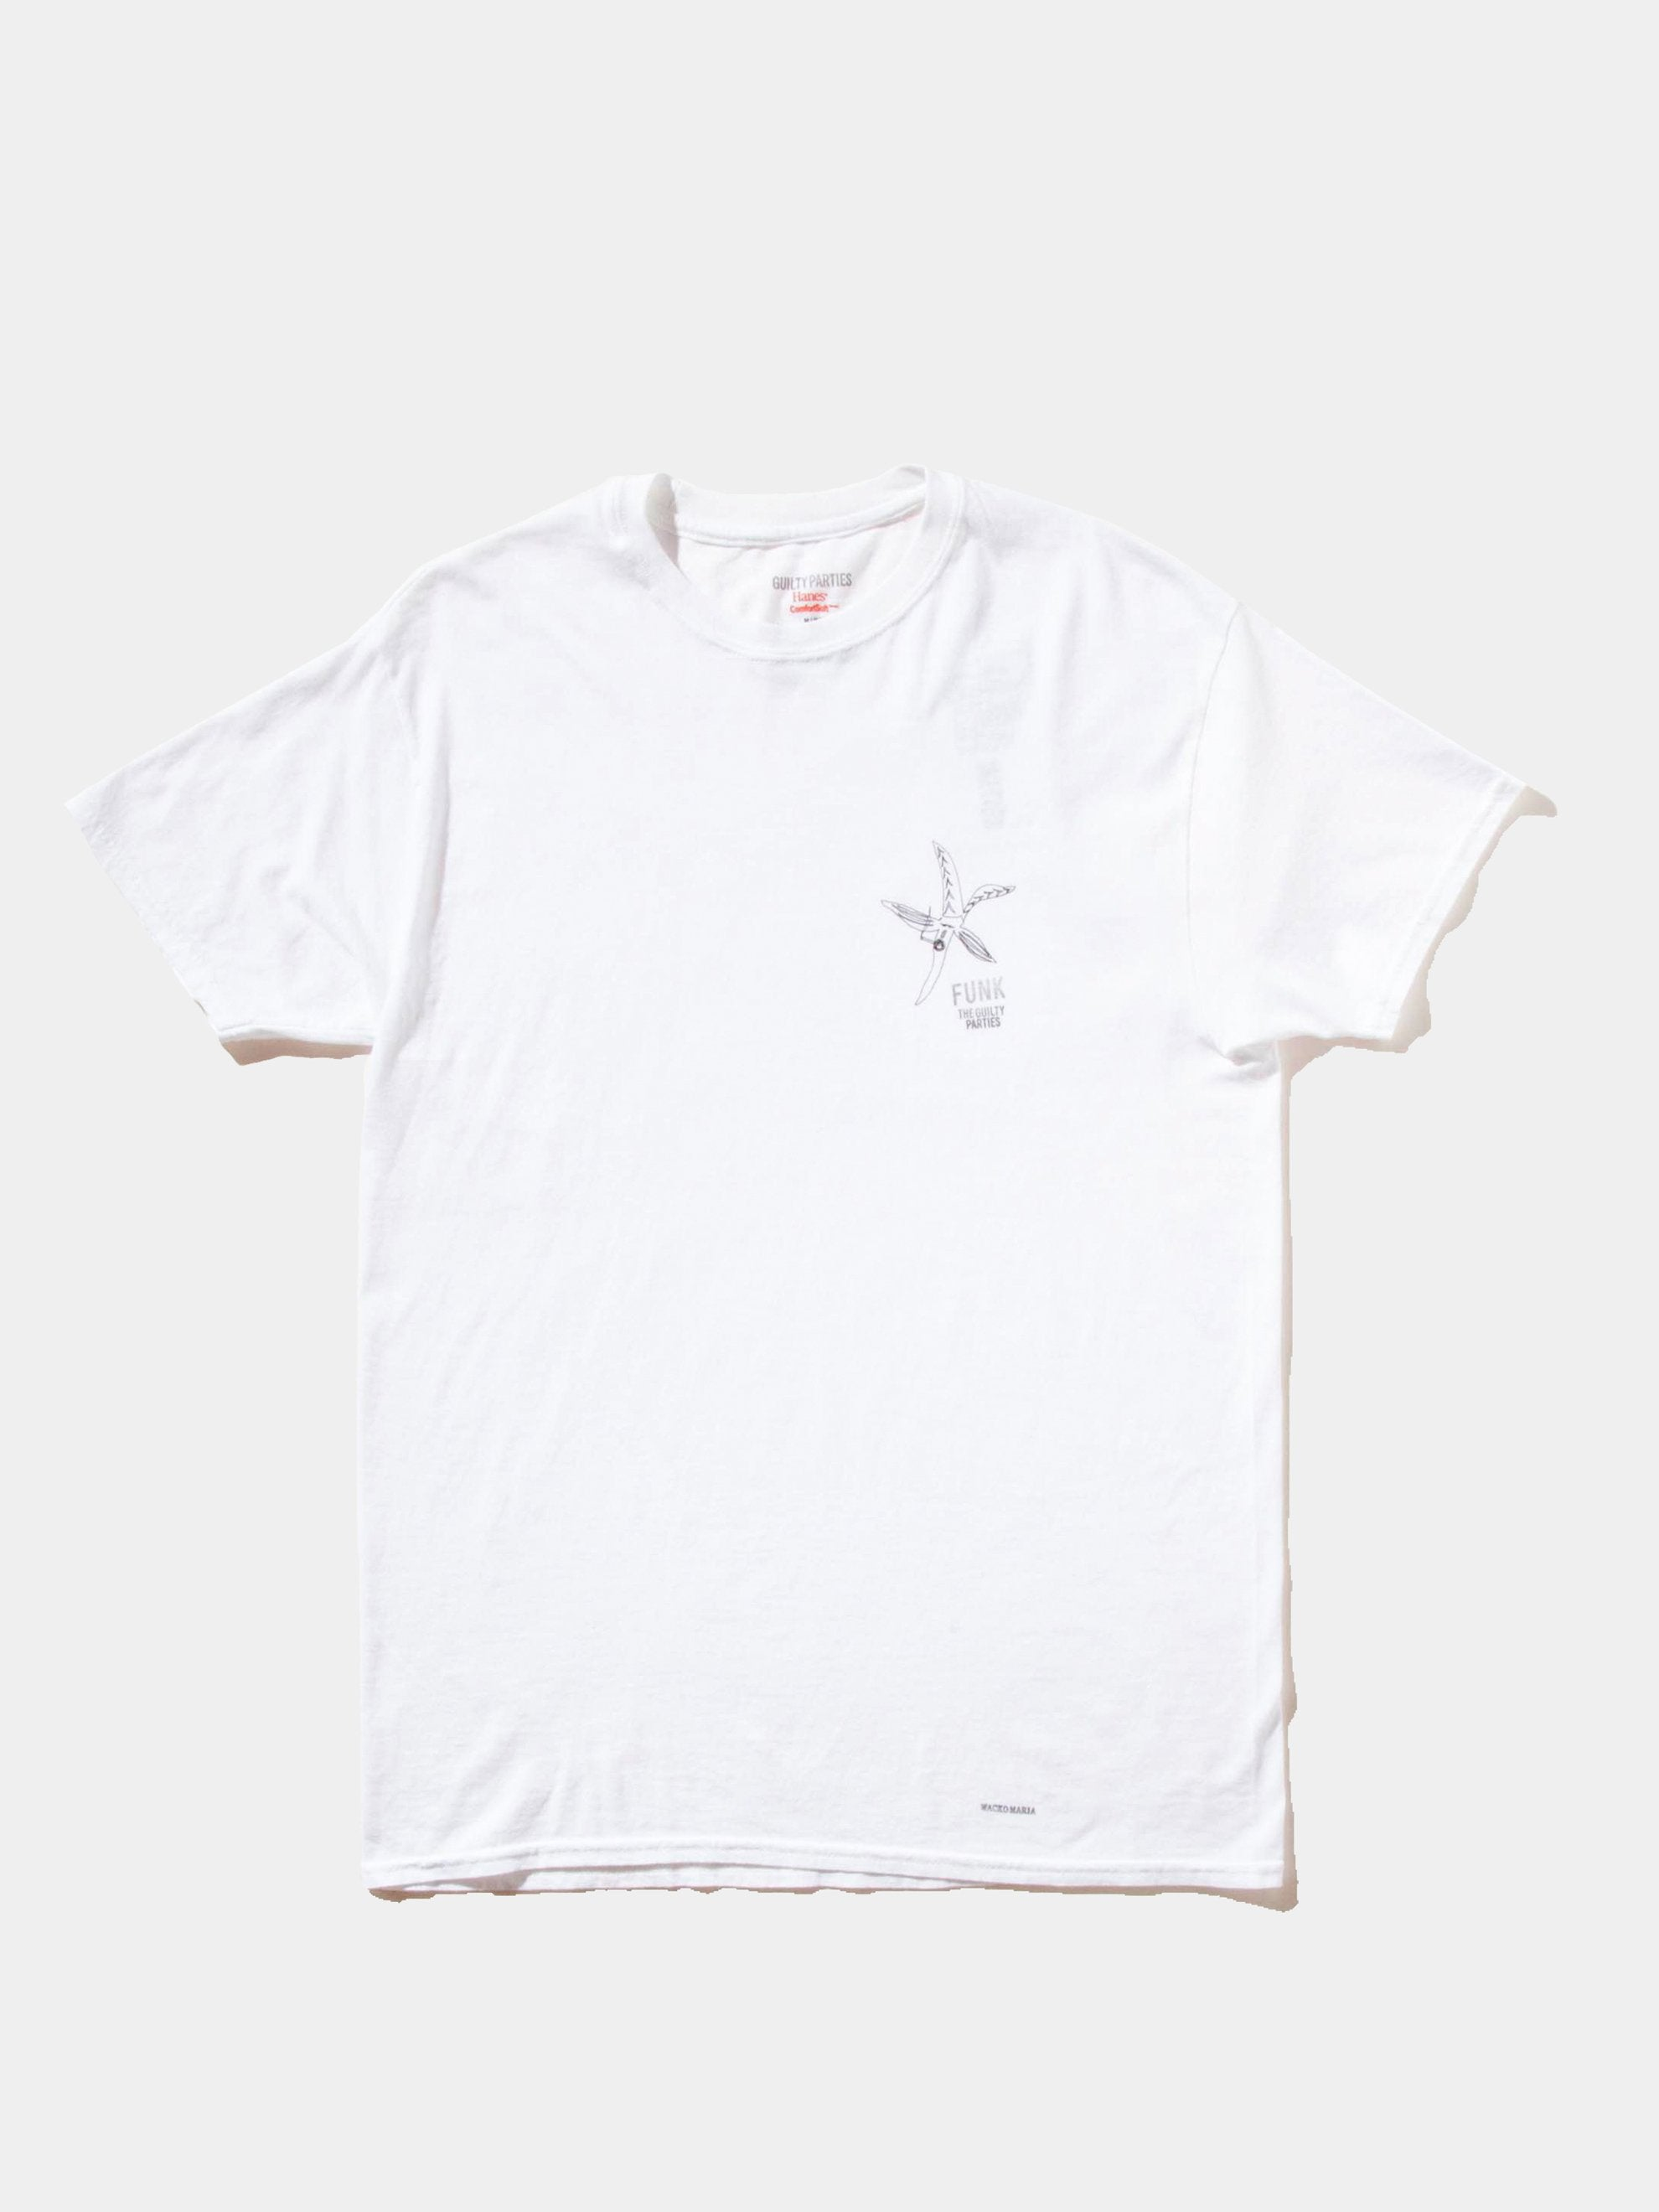 White Souvenior Crew Neck T-Shirt (Type 5) 1